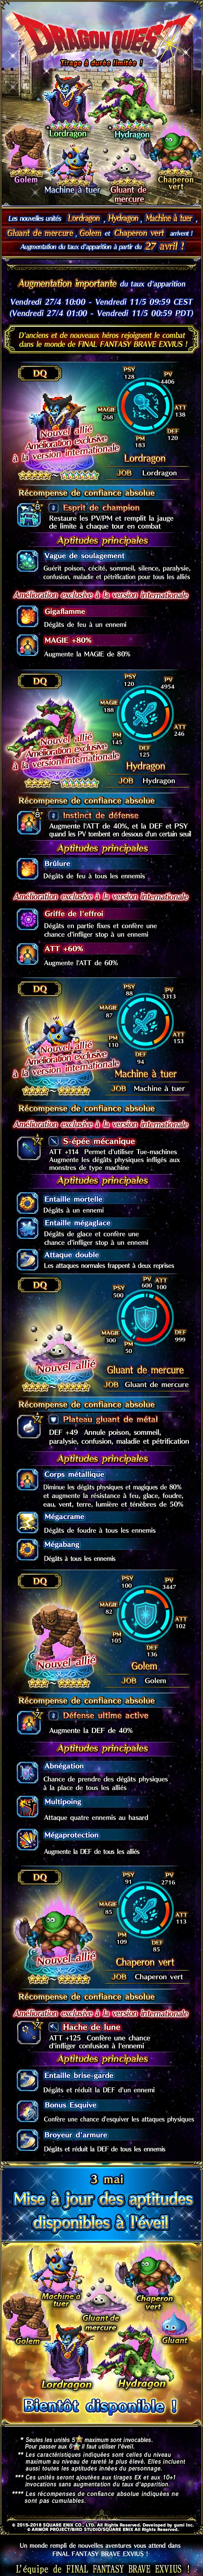 Invocation du moment - FFBE x DQ (TL) DQCompilation